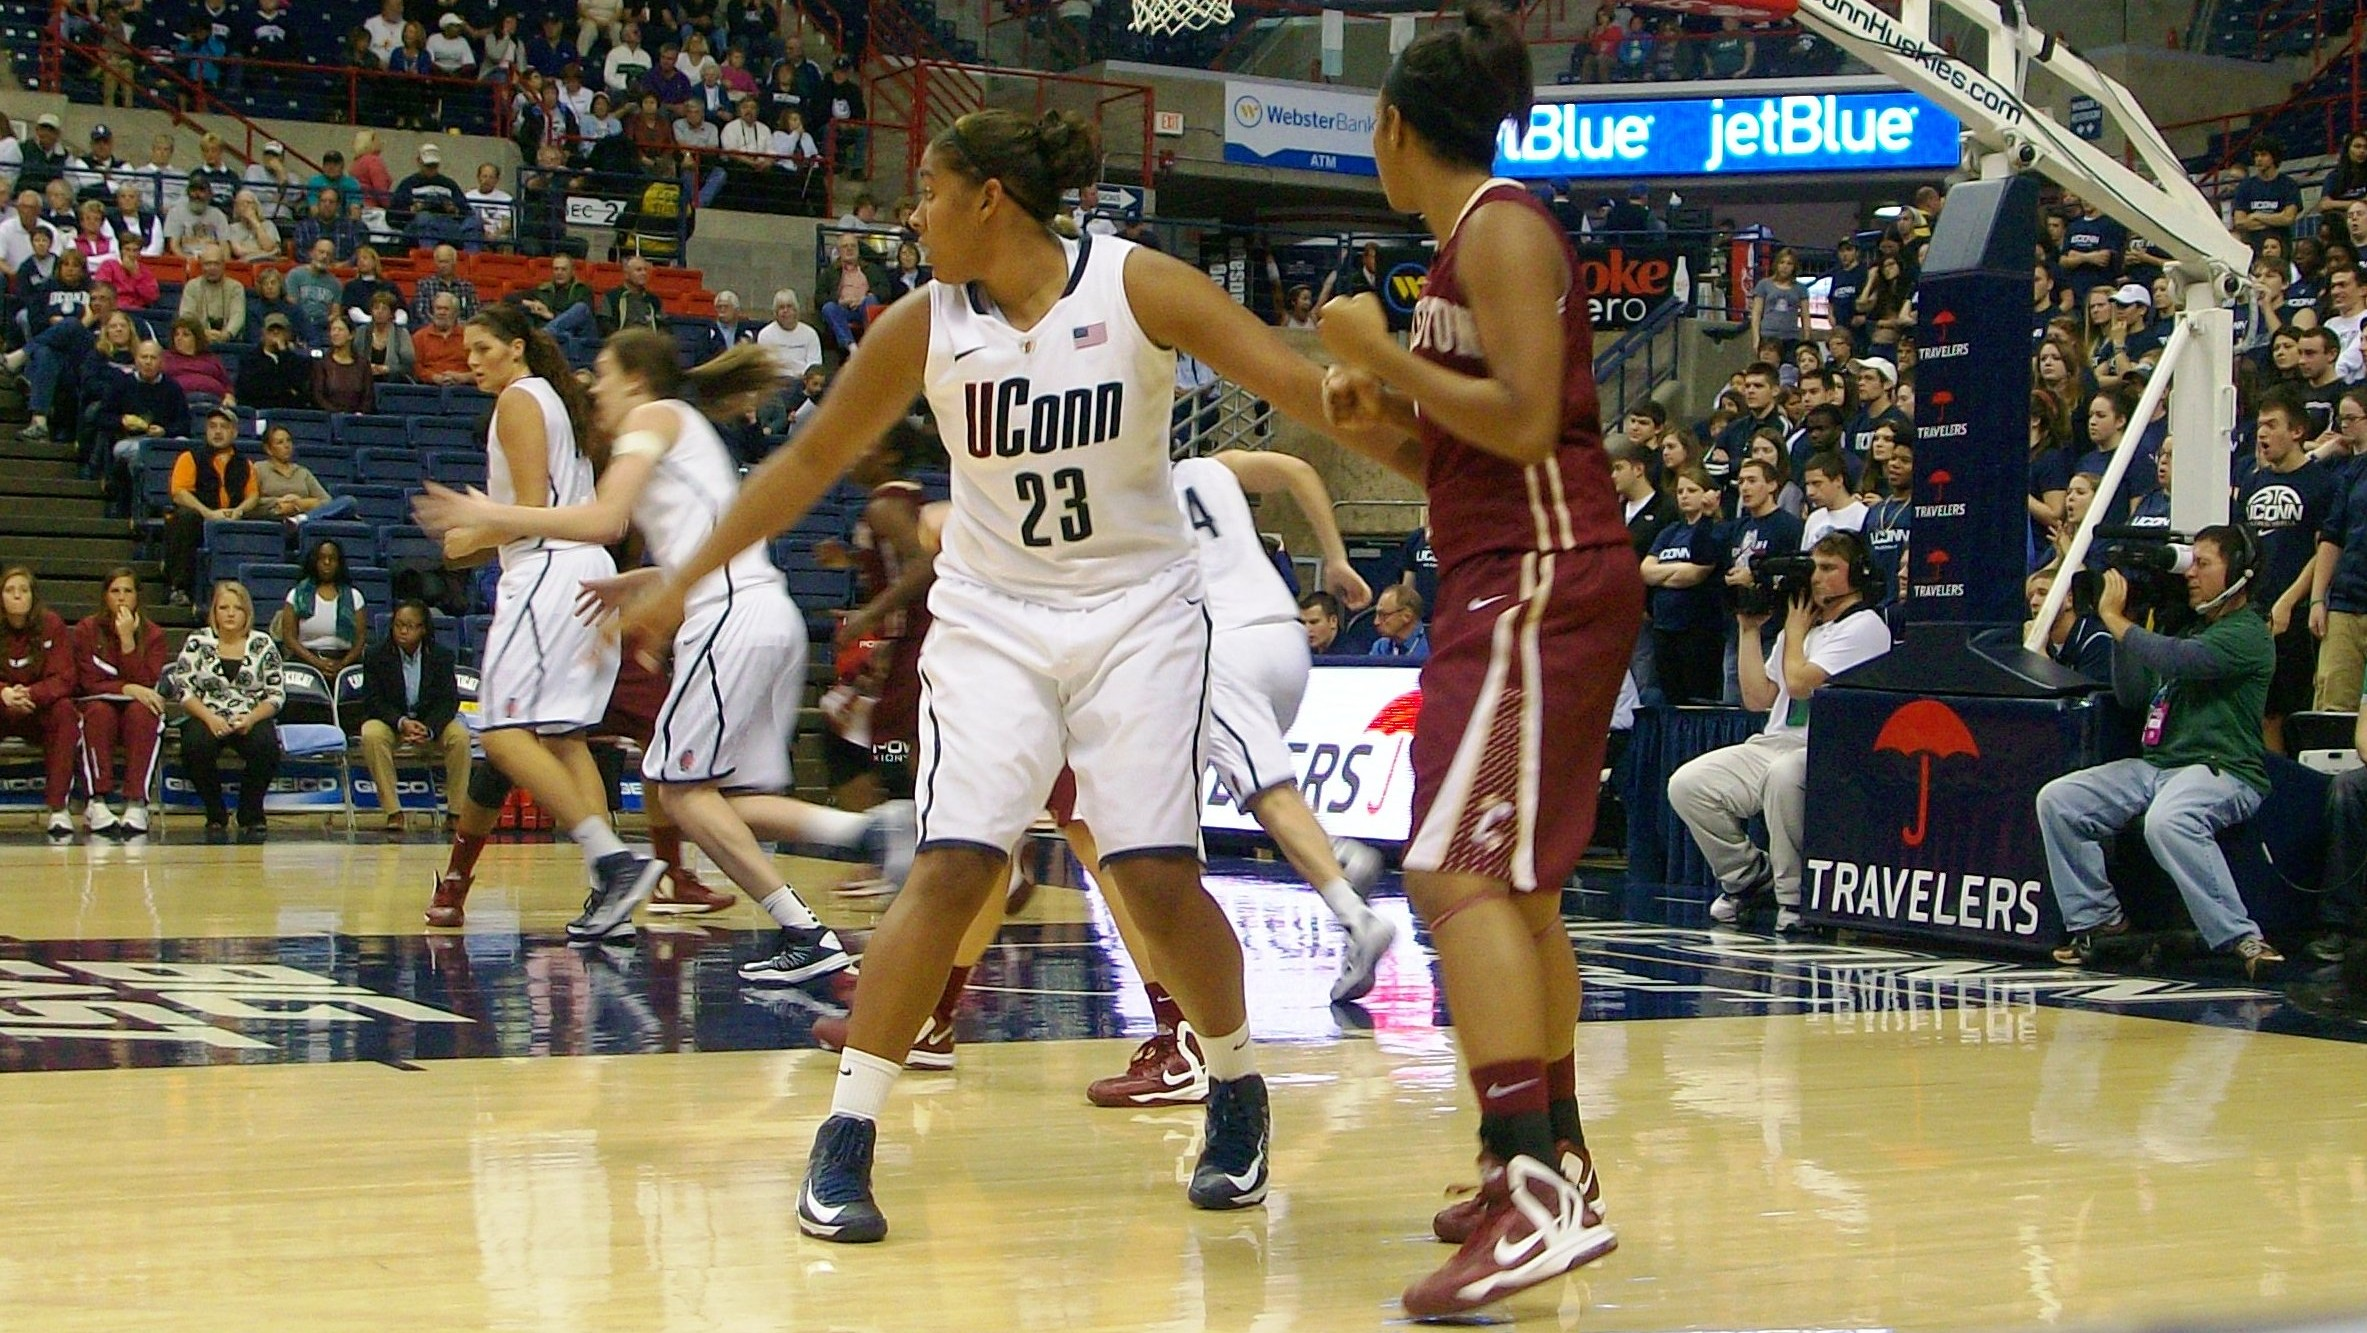 Best rivalry in women's hoops? Notre Dame-UConn nearly sold out for January game in Connecticut